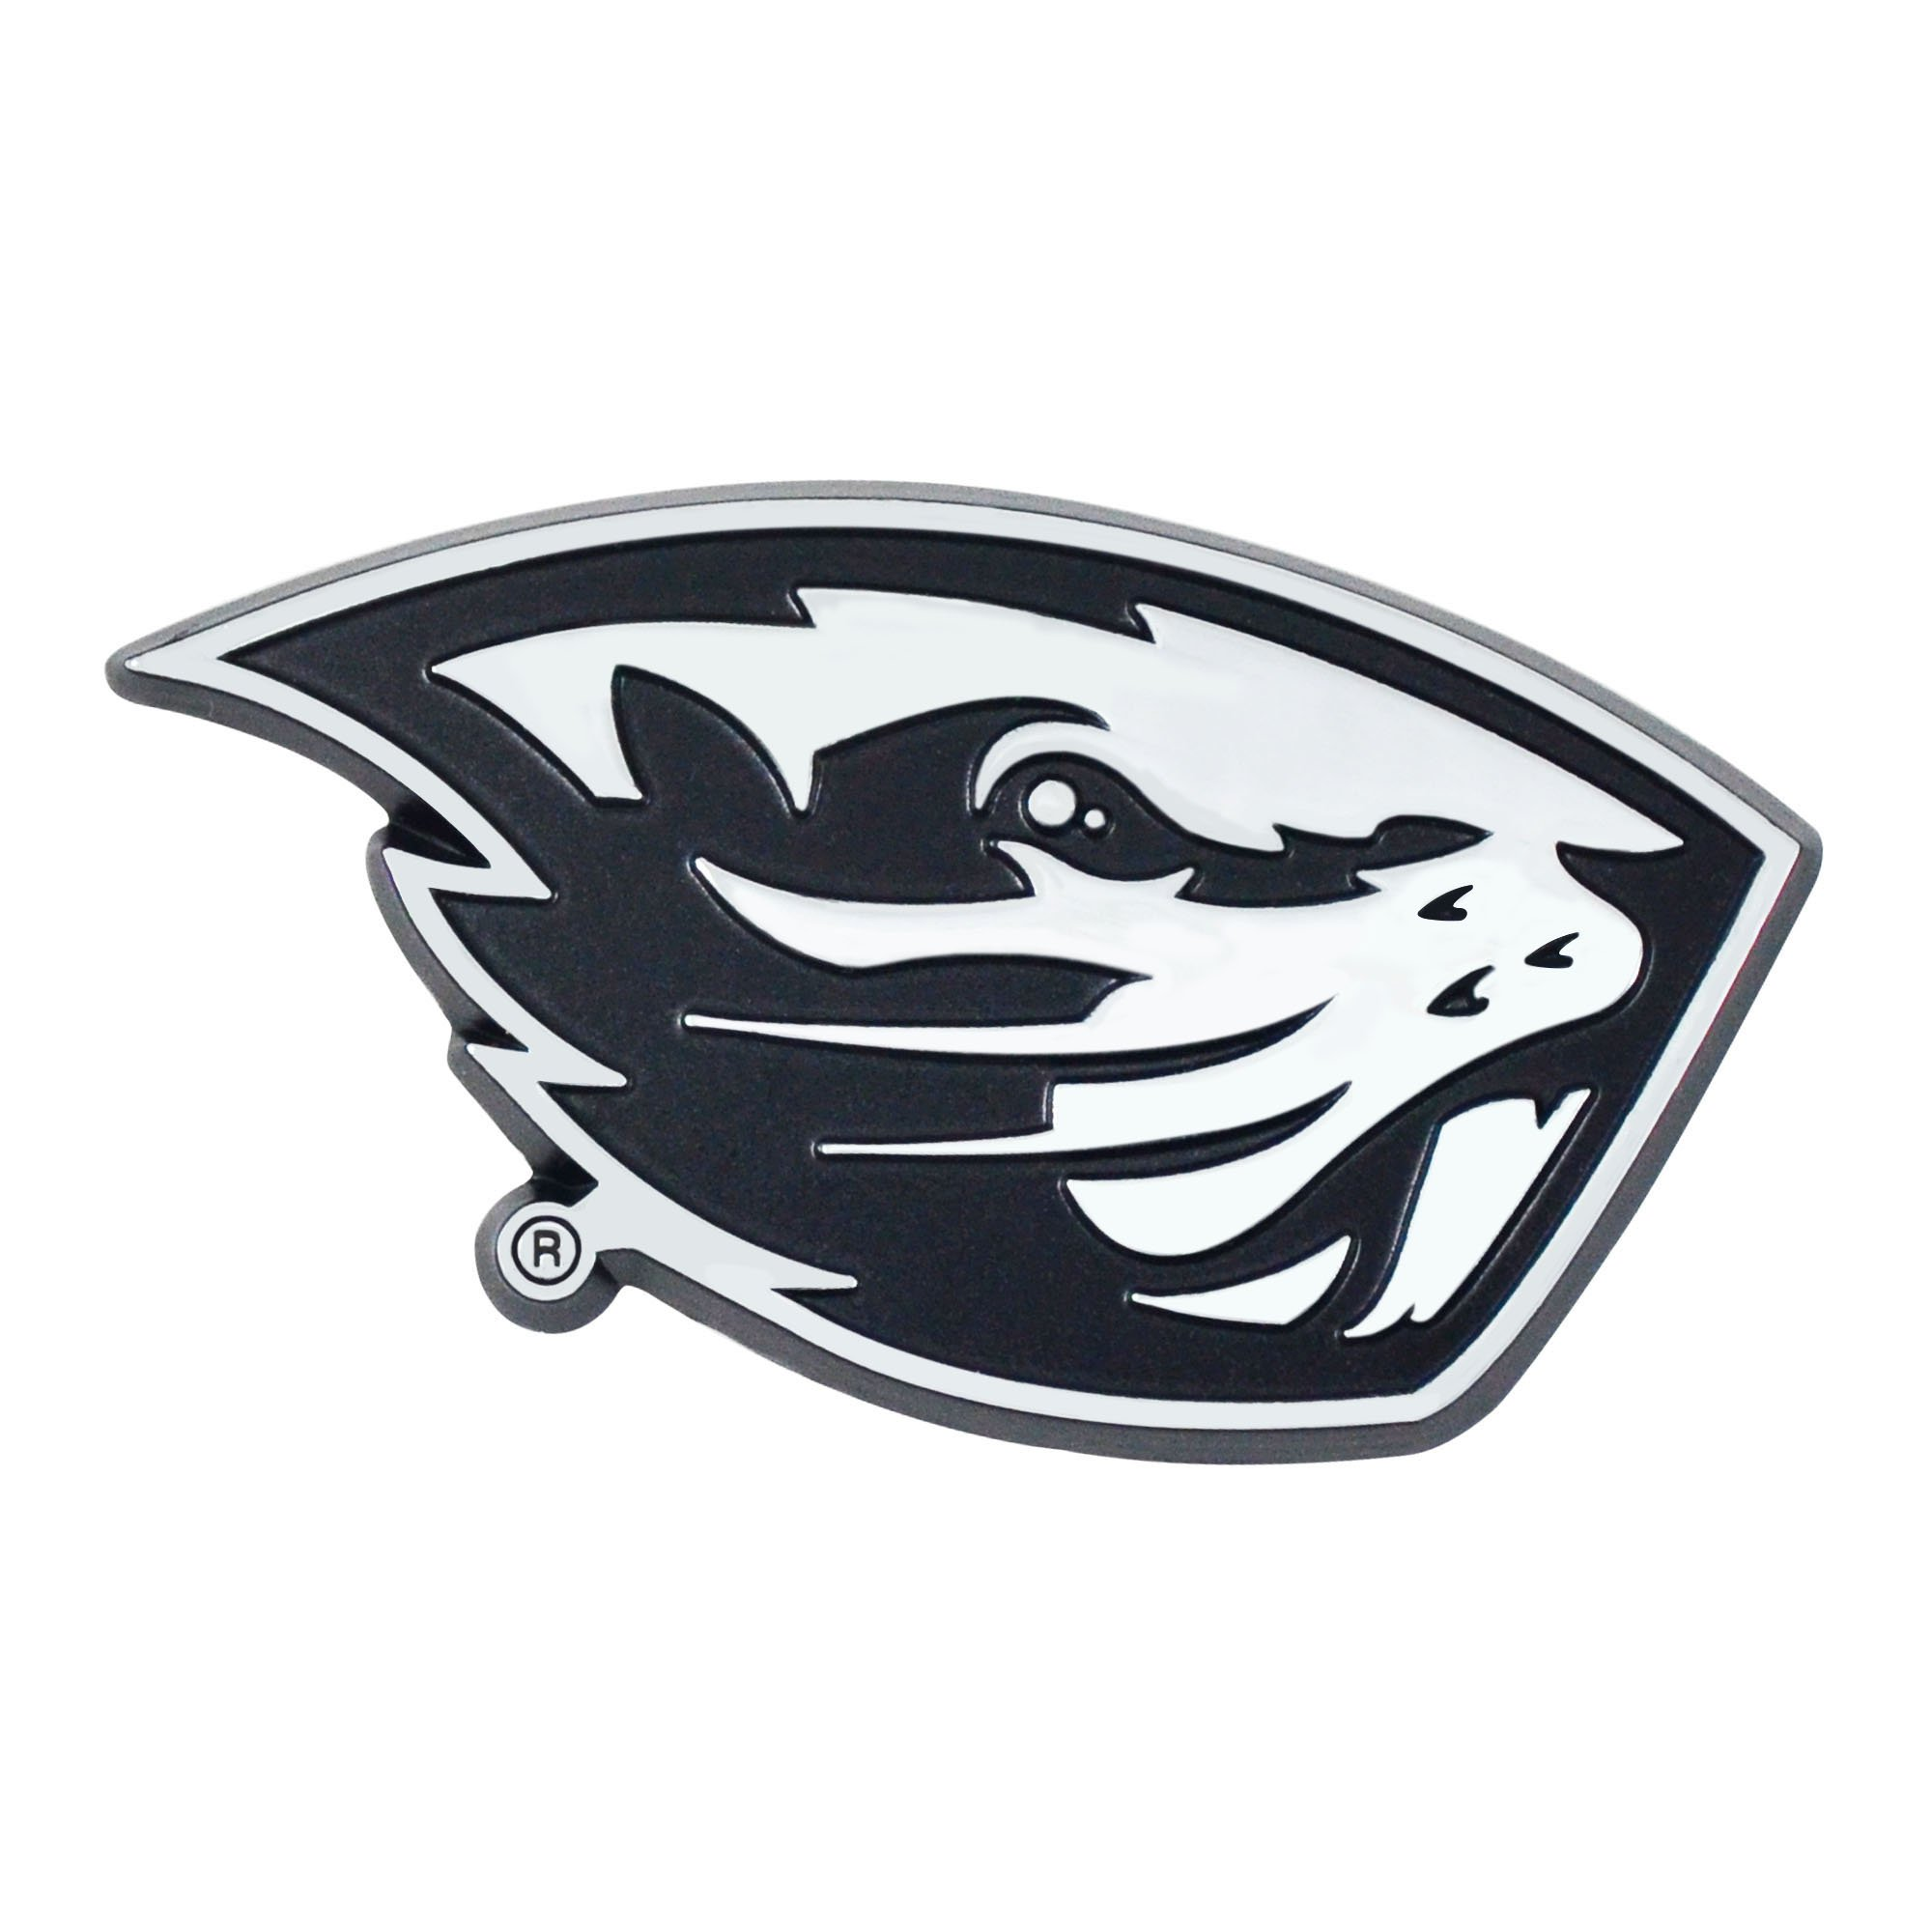 Fanmats NCAA Oregon State Beavers Oregon State Universitychrome Emblem, Team Color, One Size by Fanmats